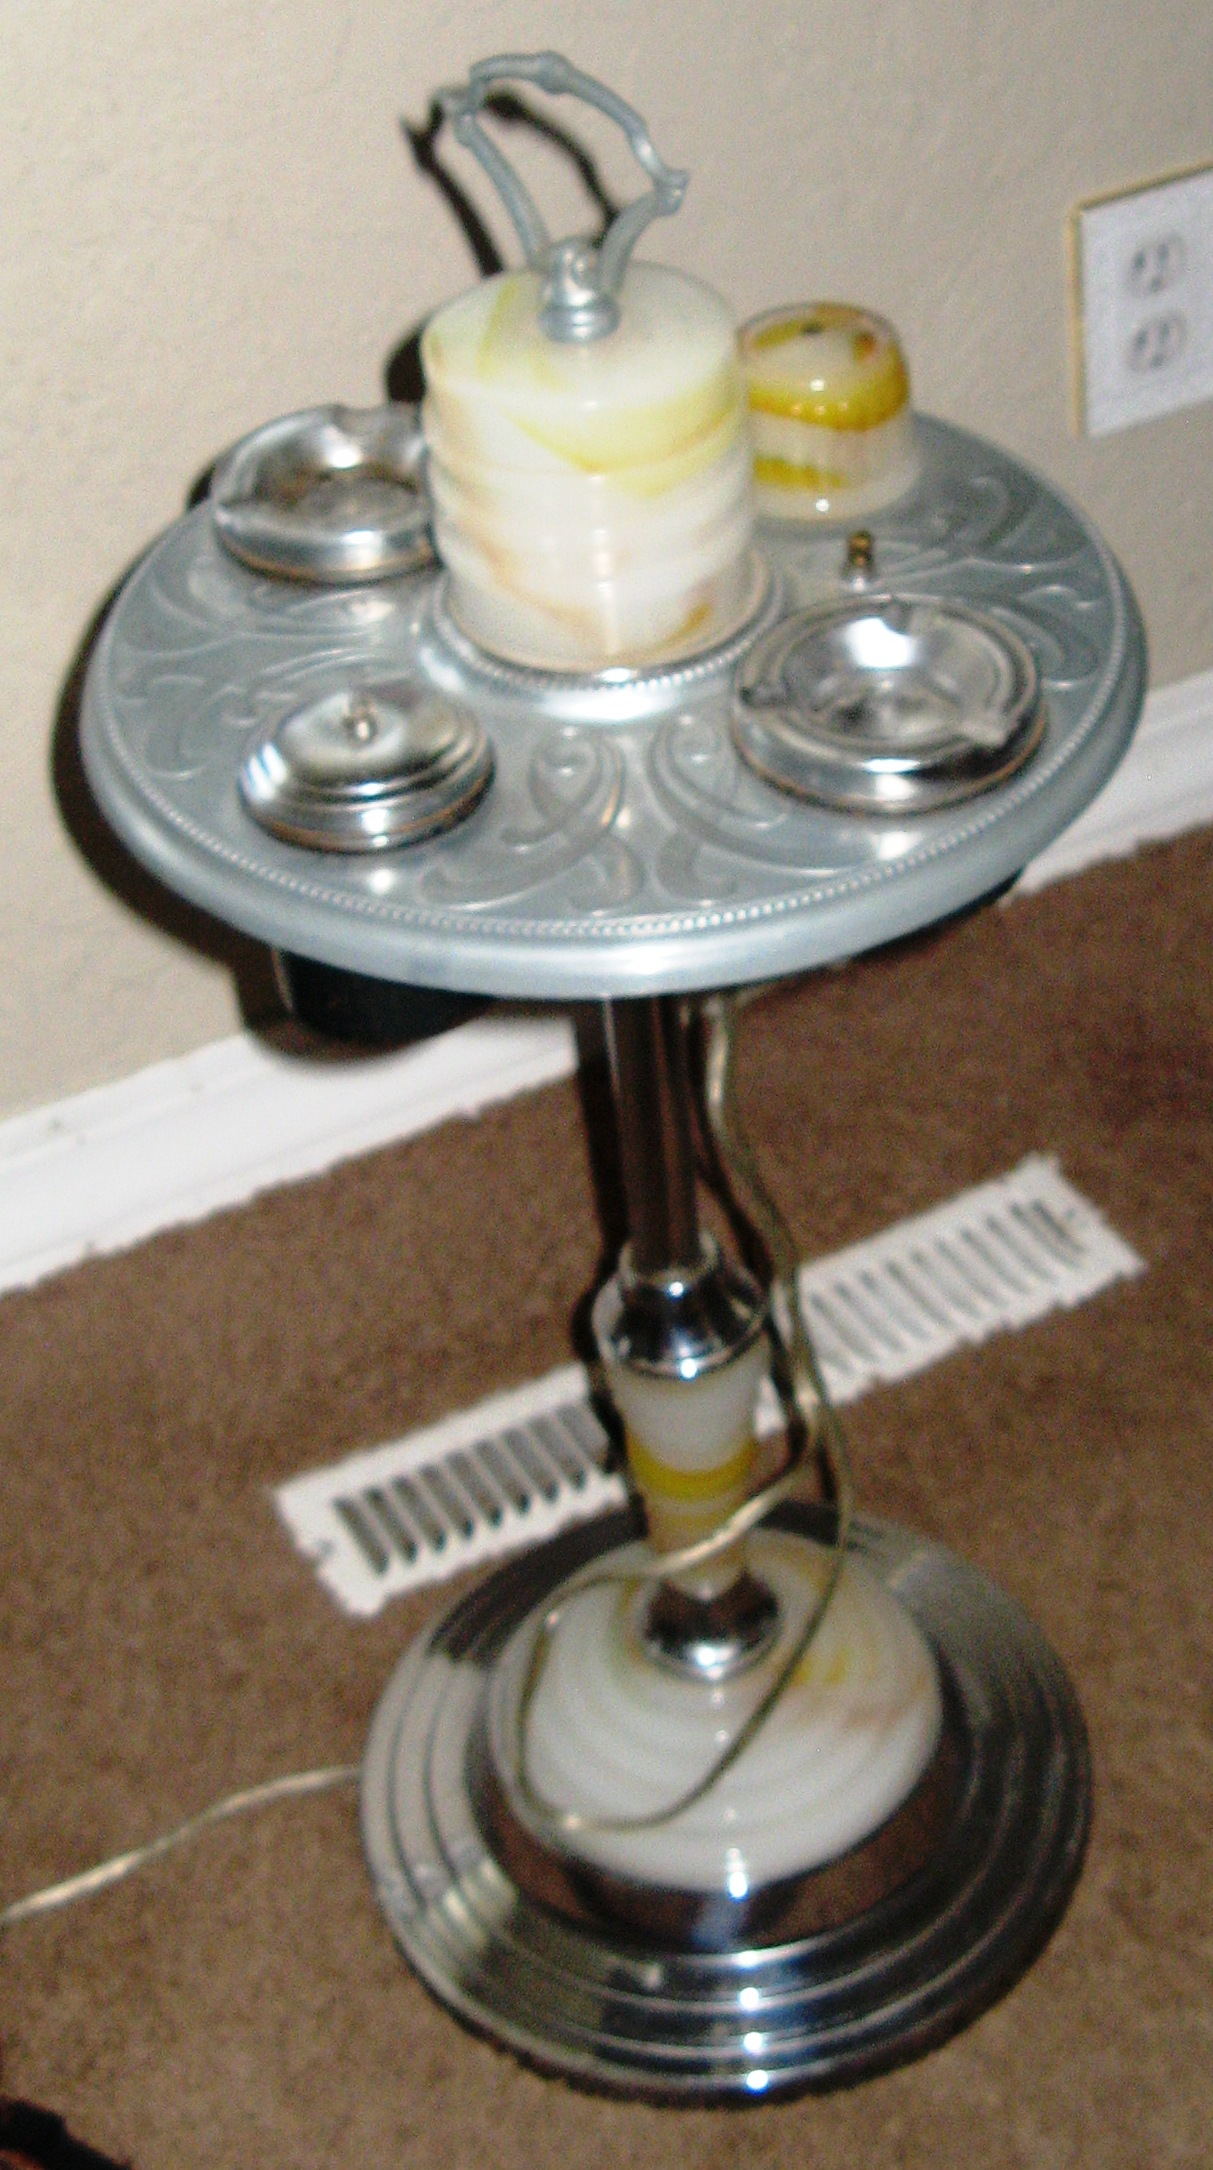 Abco 654 Floor Ashtray Smoking Stand Lamp Lighter For Sale